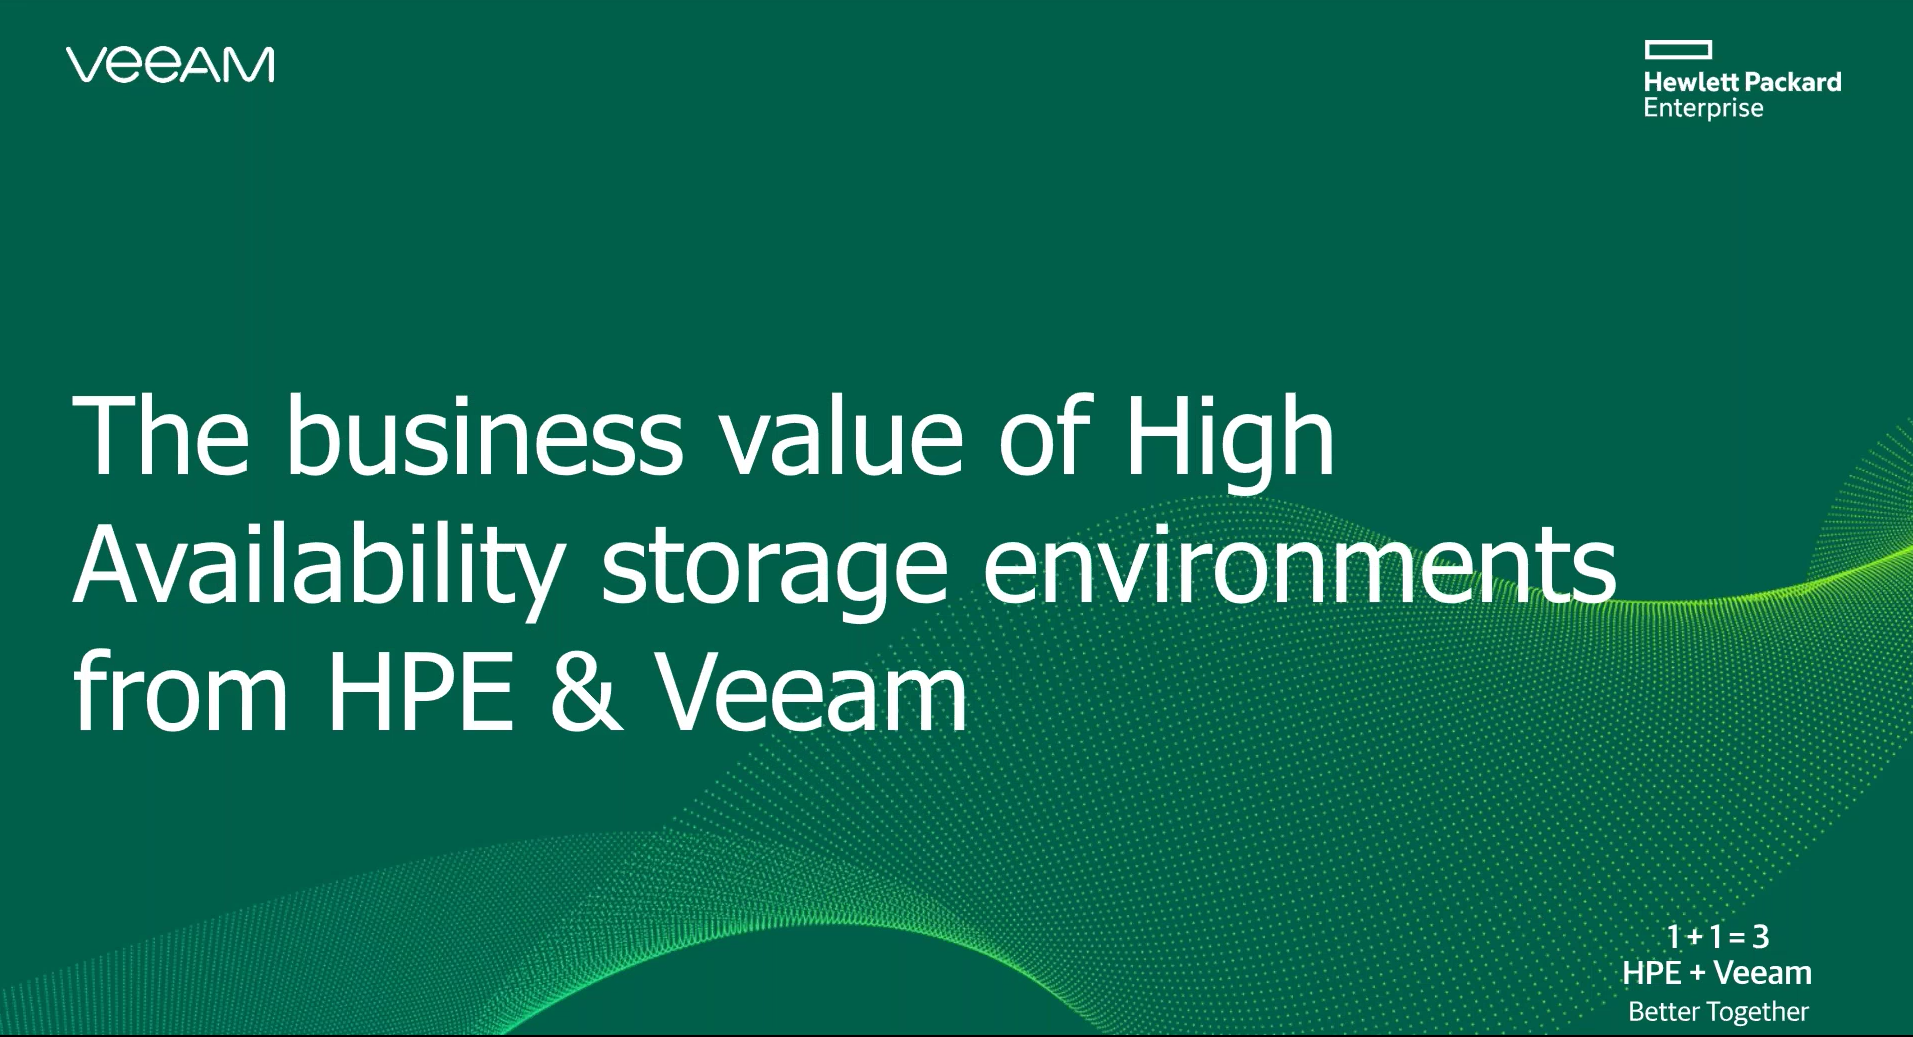 The business value of High Availability storage environments from HPE & Veeam